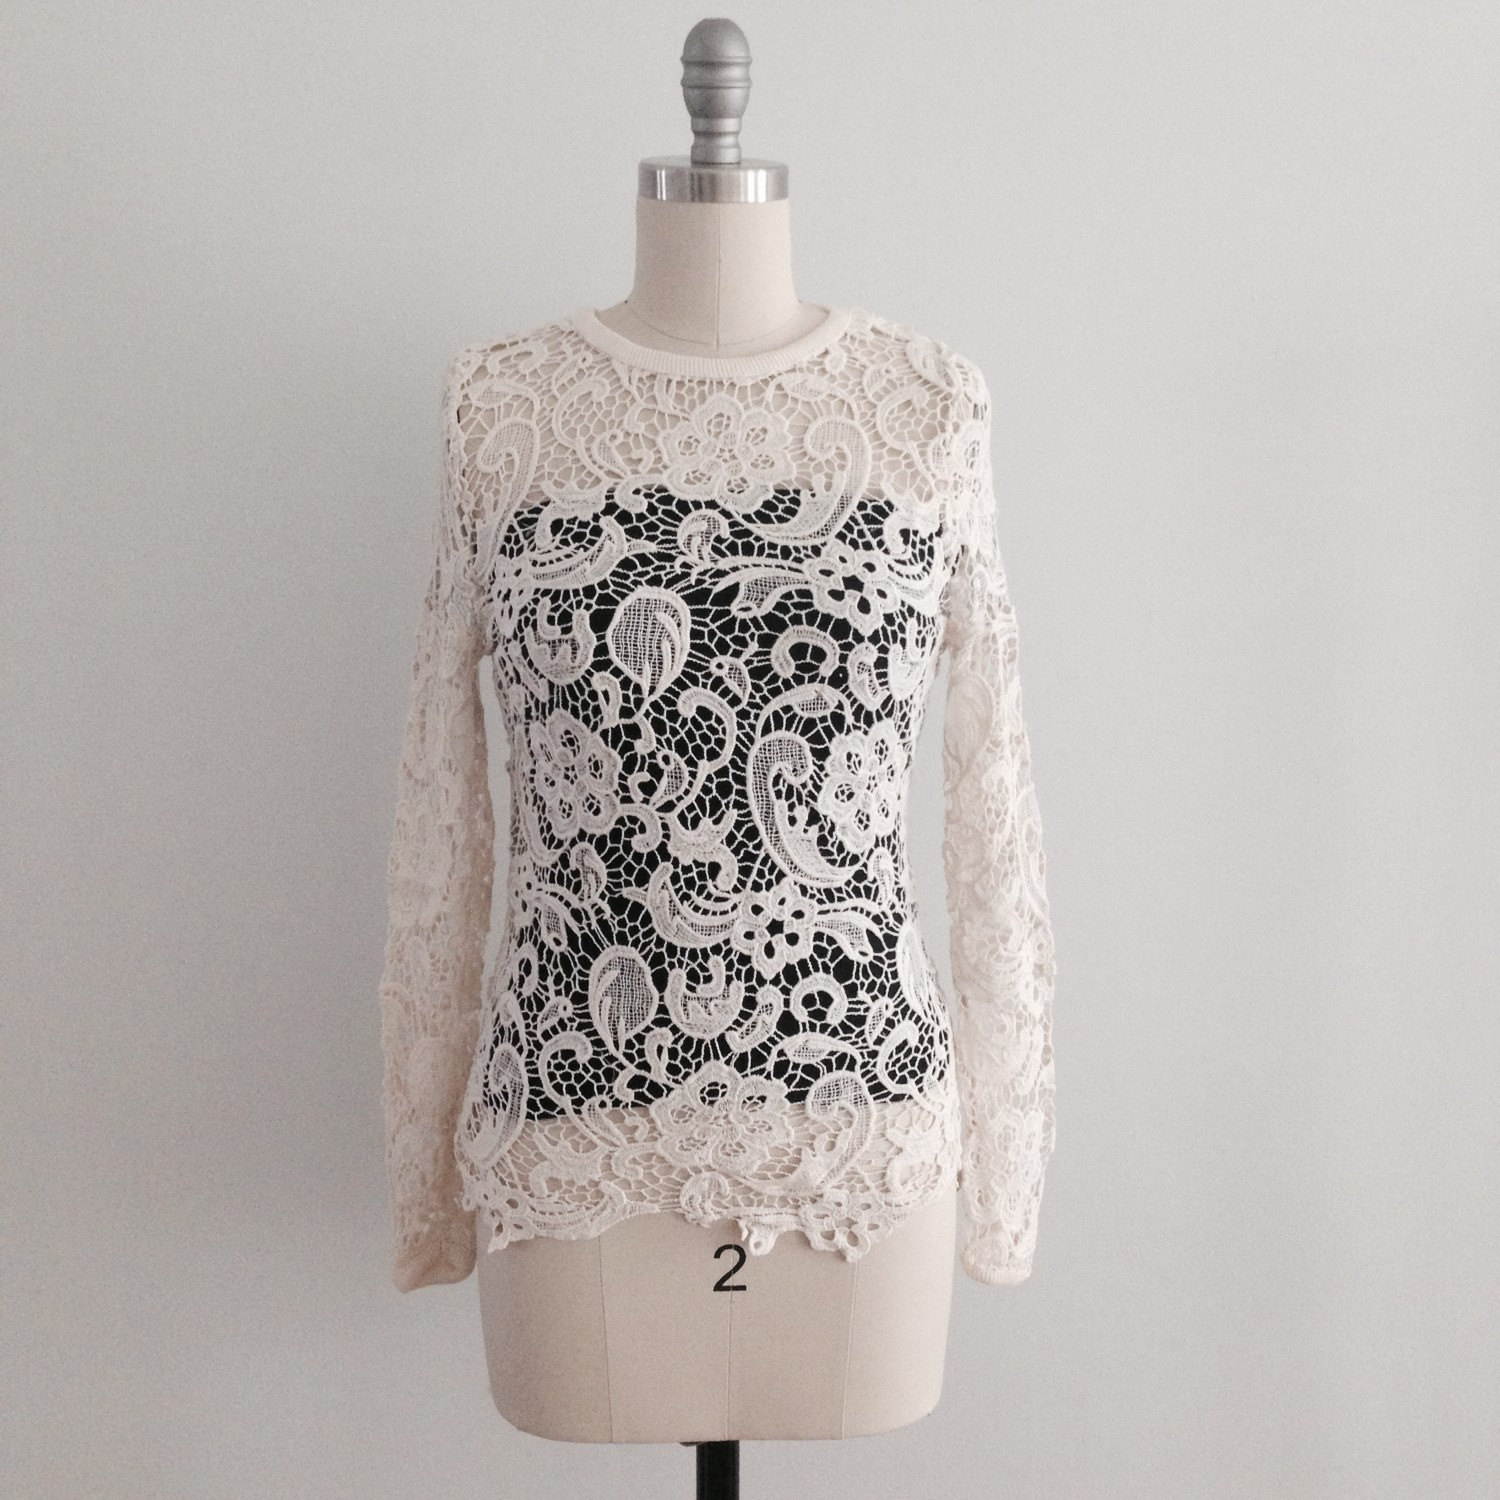 Sonia ivory crochet lace fitted shirt blouse top